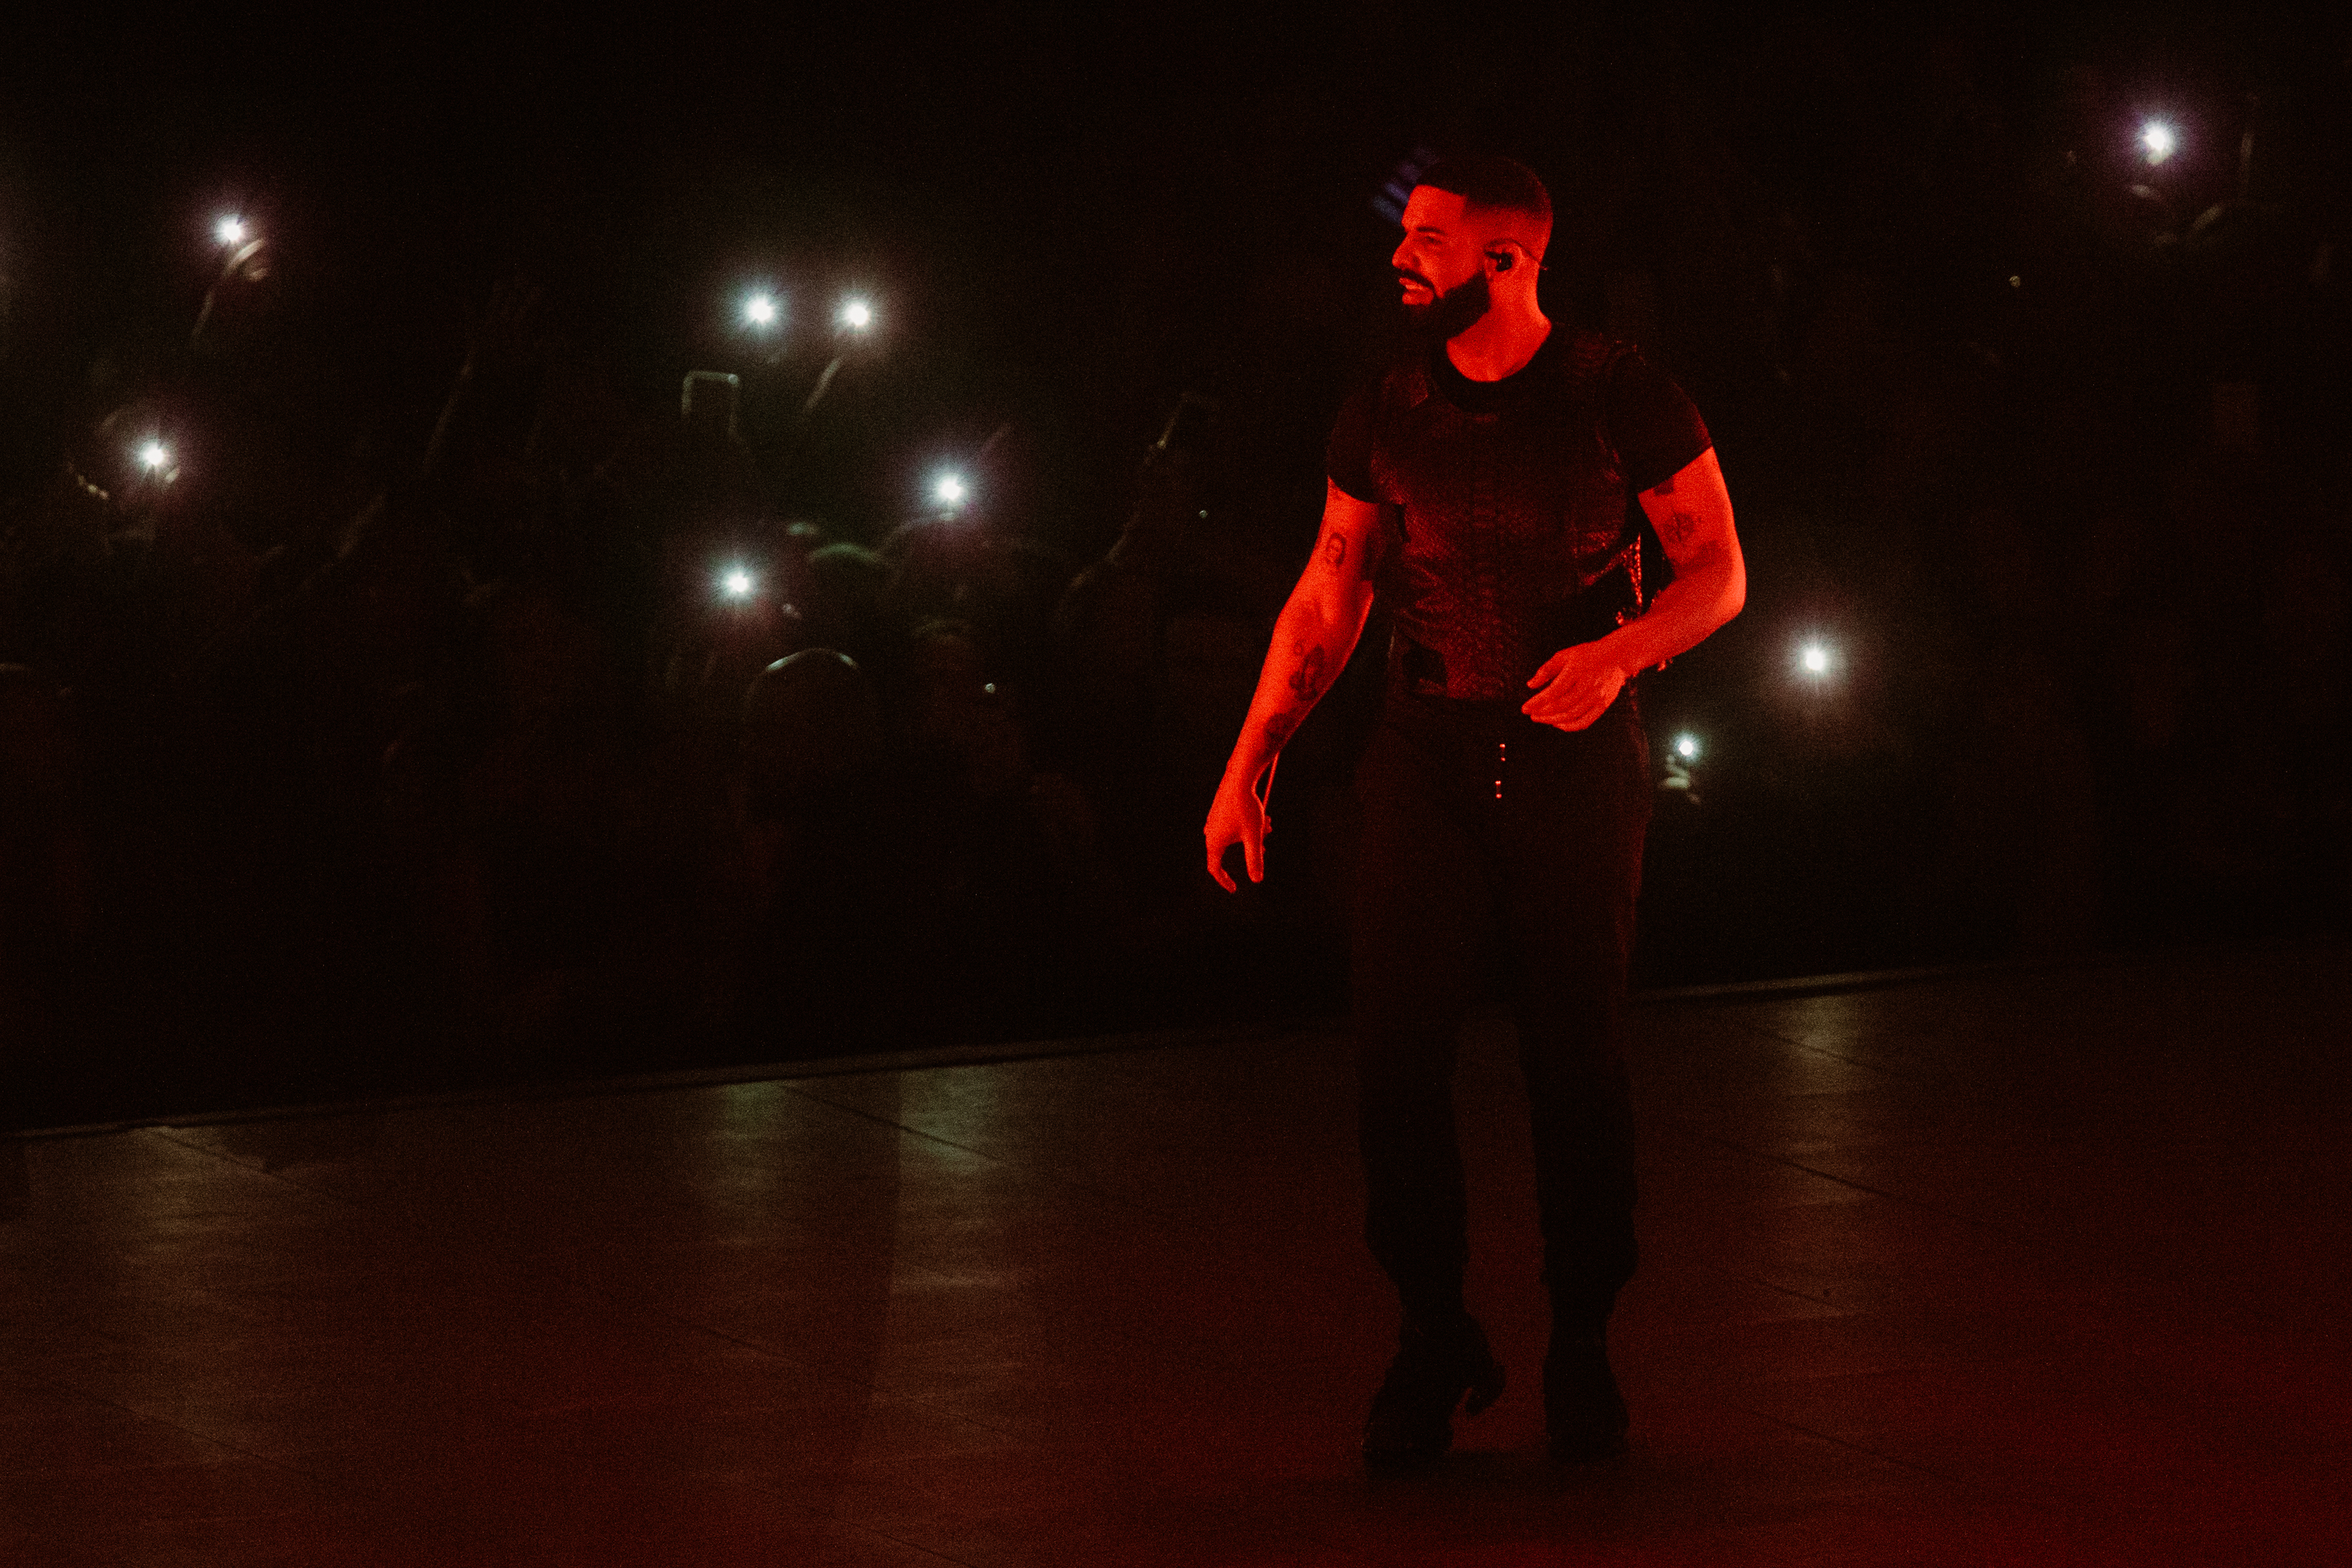 Drake was the first artist to play the renovated Tacoma Dome last night (Nov. 1) and RIGHTLY SO. The Canadian award-winning rapper shut it down south of the city, as part of his Aubrey & The Three Migos Tour. The Migos mysteriously didn't show up, but don't worry - Drake has it covered. (Image: Sunita Martini / Seattle Refined)